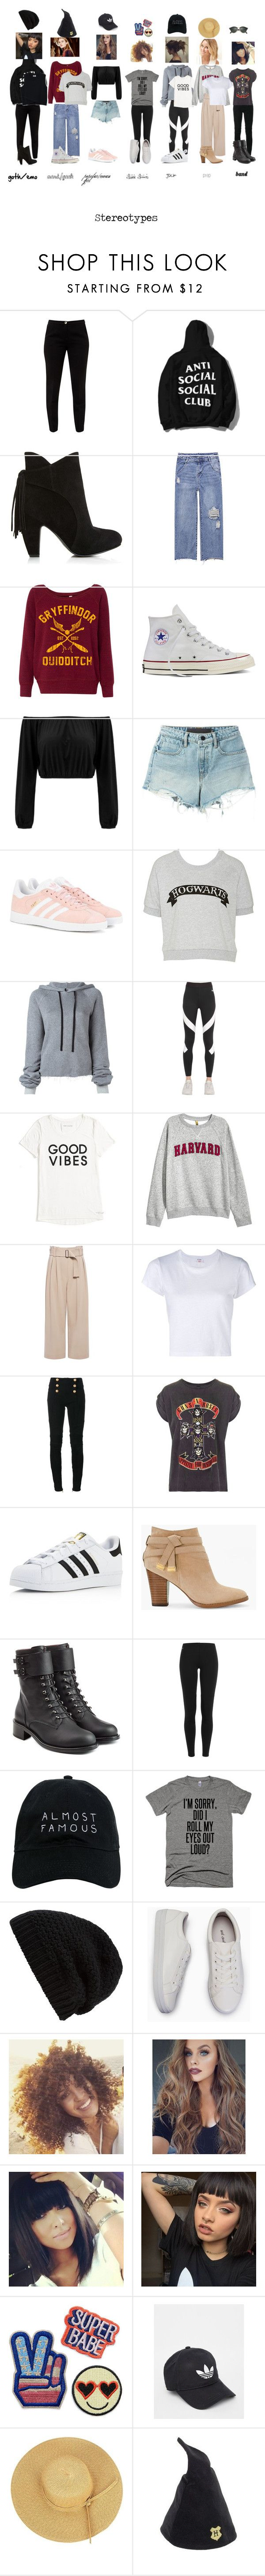 """HS stereotypes"" by kristenkelly09 on Polyvore featuring Ted Baker, Converse, T By Alexander Wang, adidas Originals, Unravel, NIKE, Tommy Hilfiger, A.L.C., RE/DONE and Balmain"